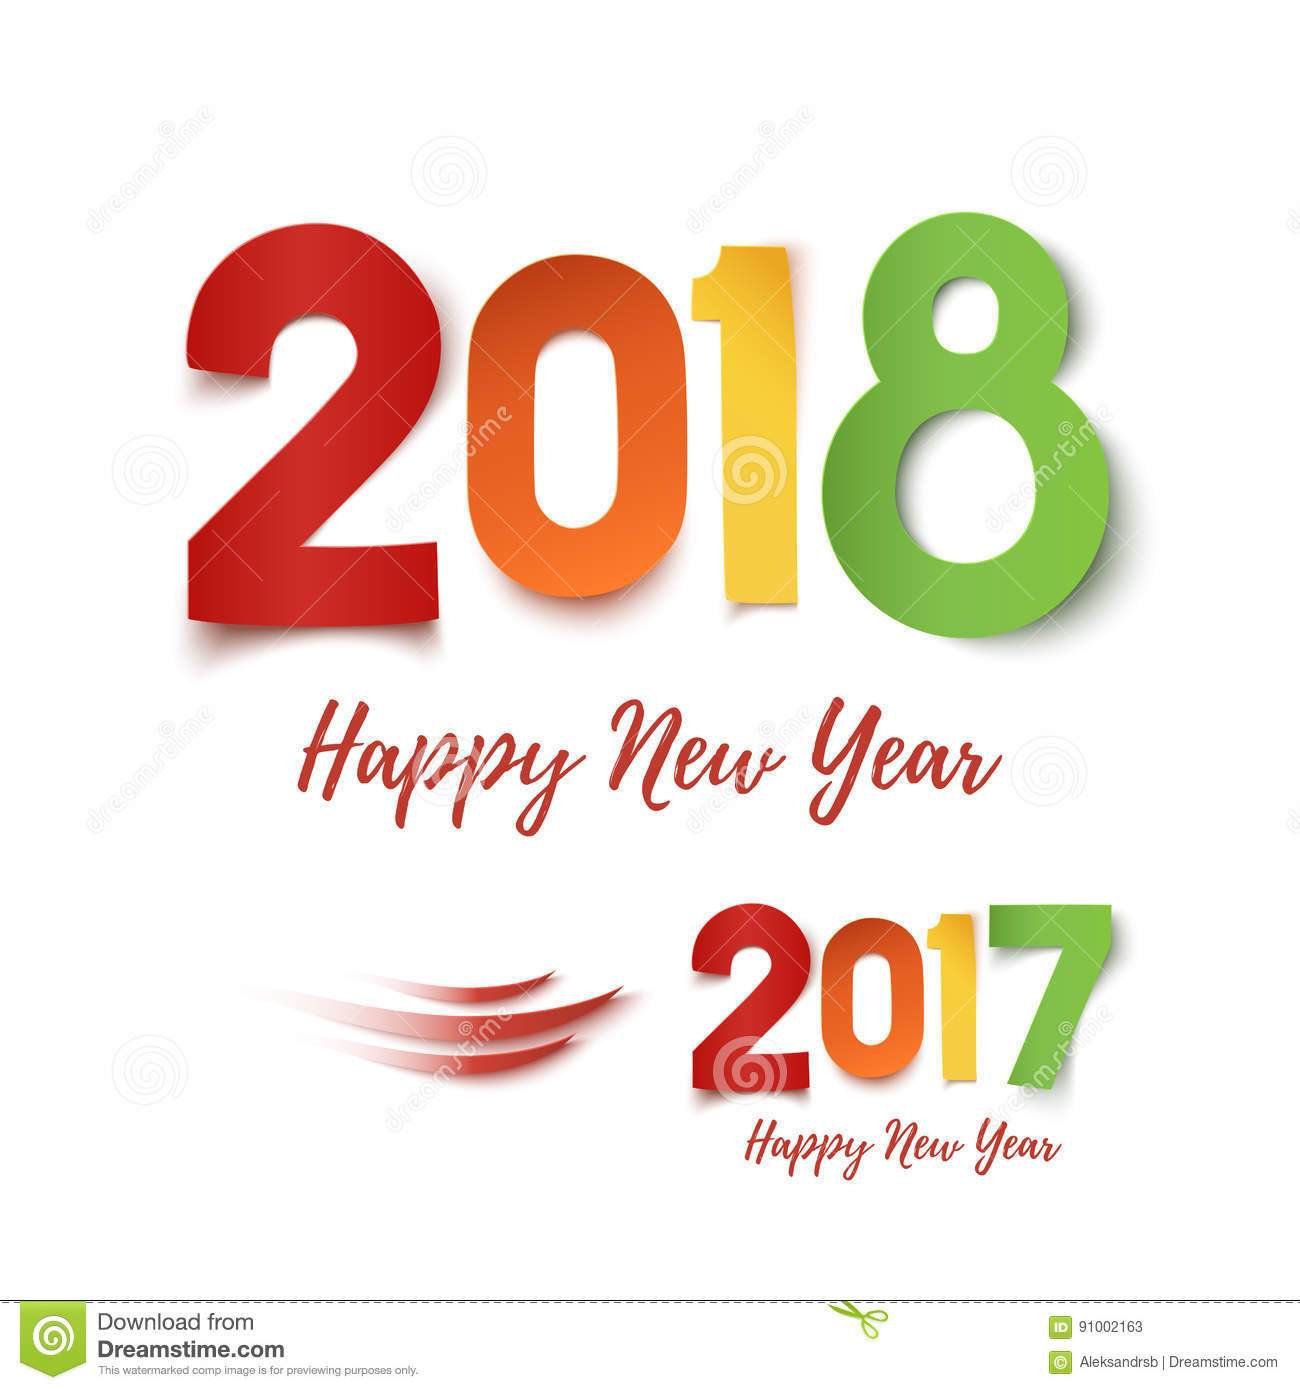 Happy New Year 2017- 2018 Colorful Design. Stock Vector ...